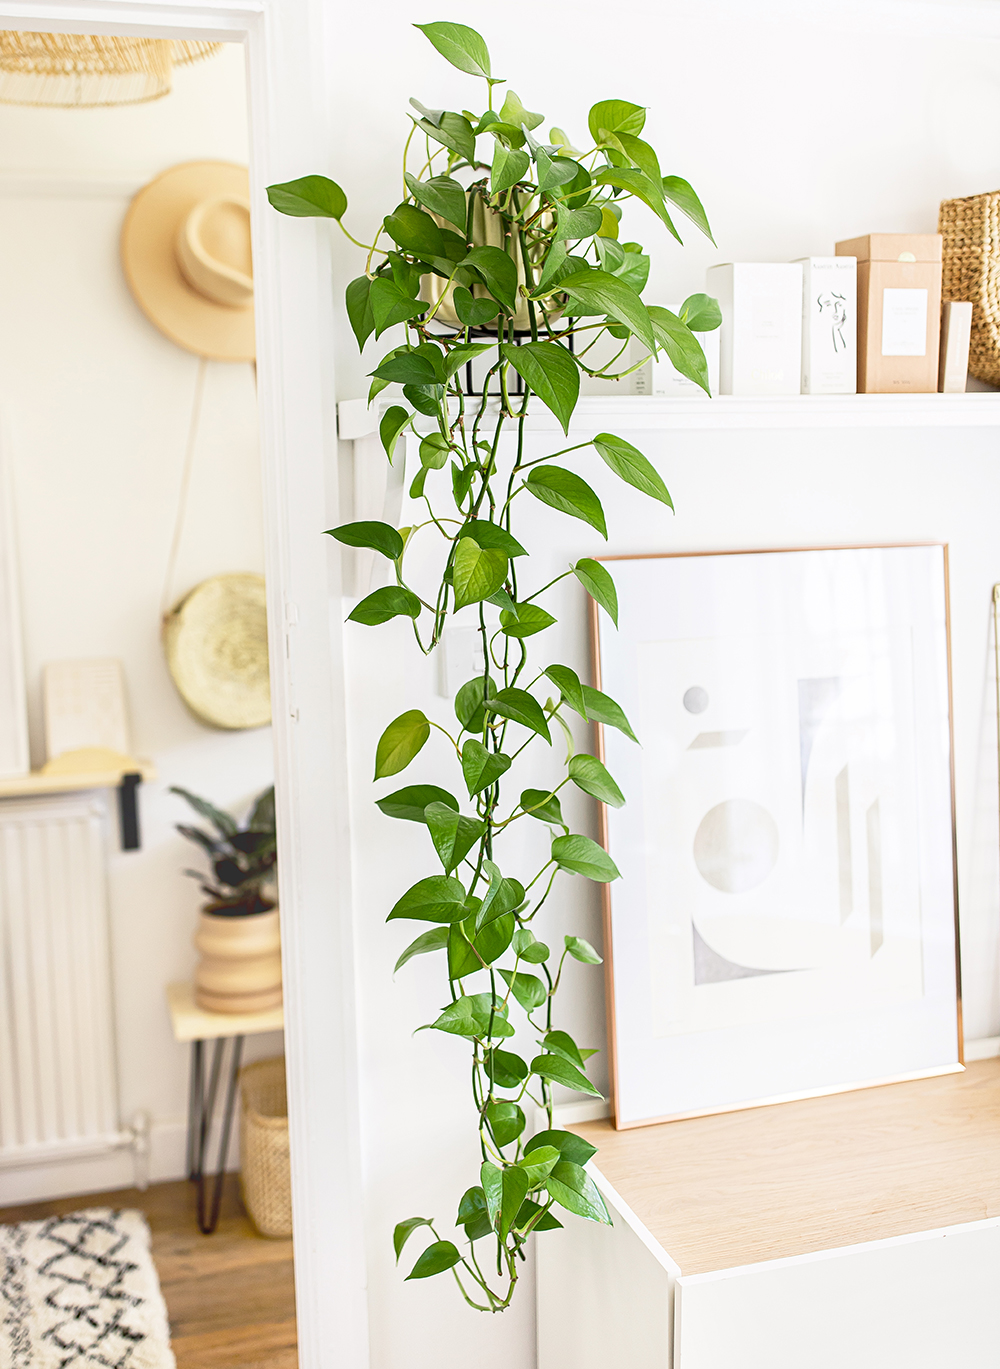 Green-Sweetheart-Plant-Philodendron-scandens-kelseyinlondon-homewithkelsey-plant-guide-best-indoor-plants